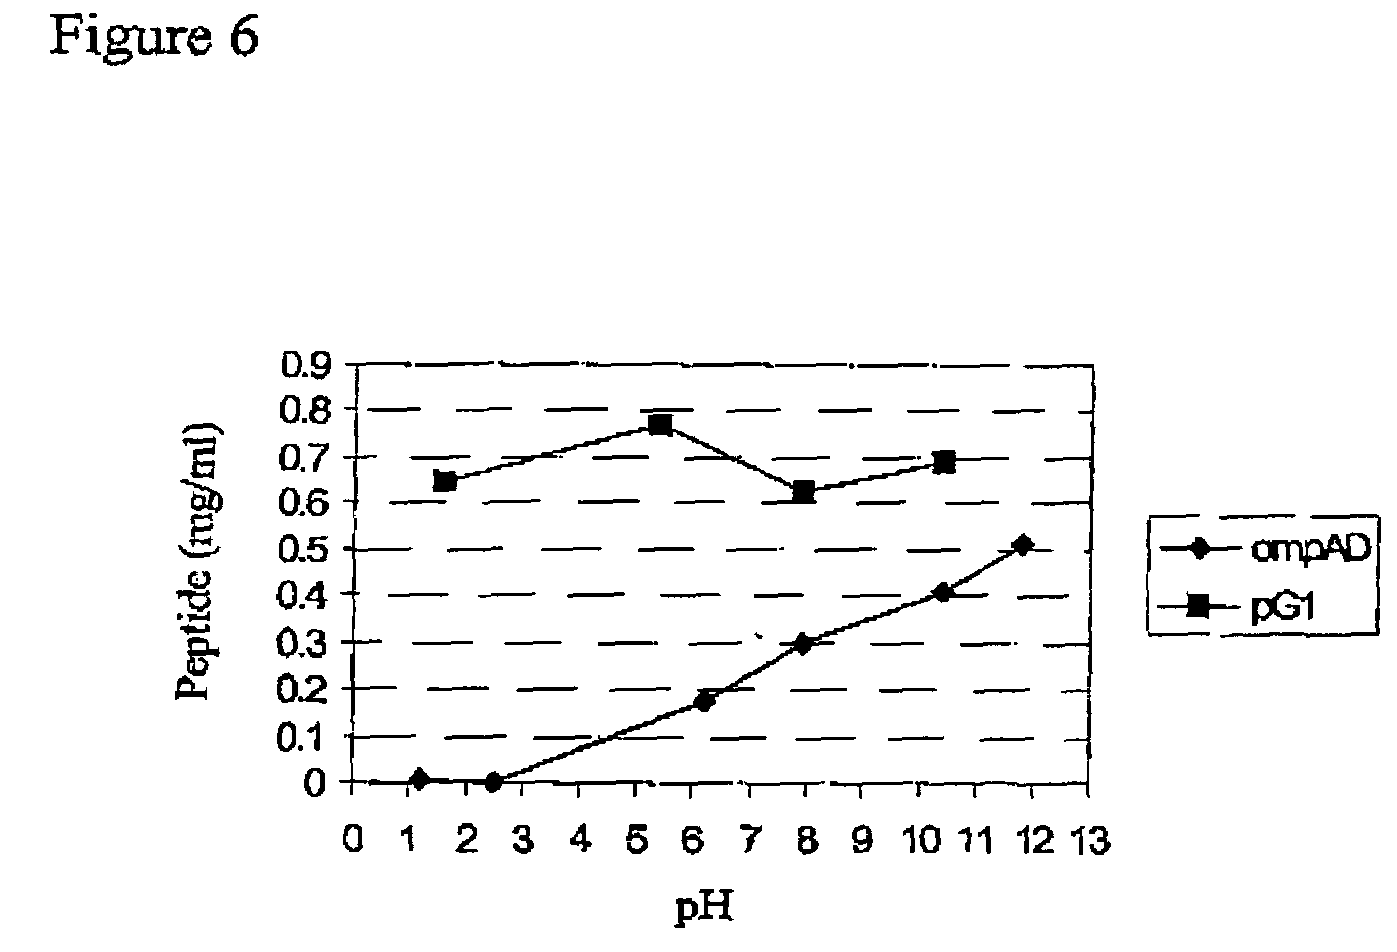 expression and purification of the antimicrobial Biotechnologically relevant enzymes and proteins high level expression and purification of antimicrobial human cathelicidin ll-37 in escherichia coli.